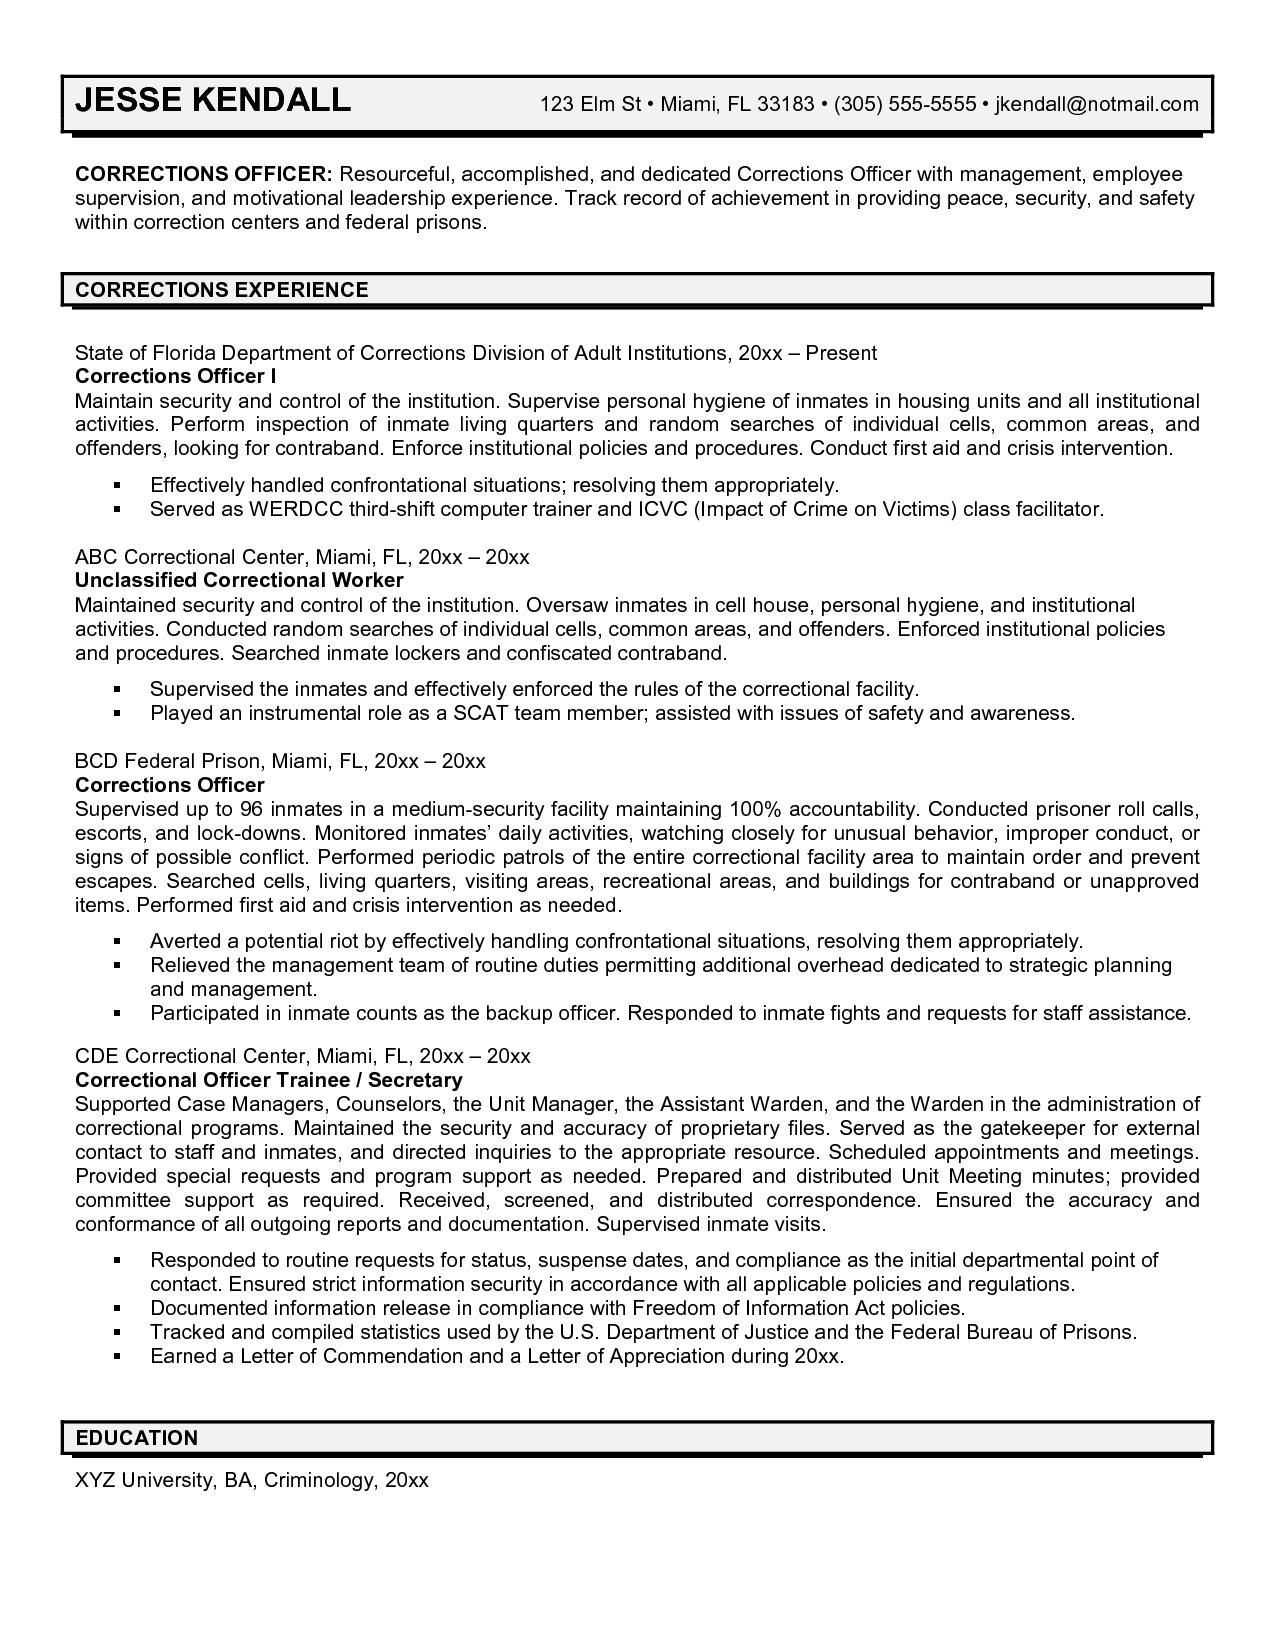 Correctional Officer Resume Samples  HttpWwwJobresumeWebsite